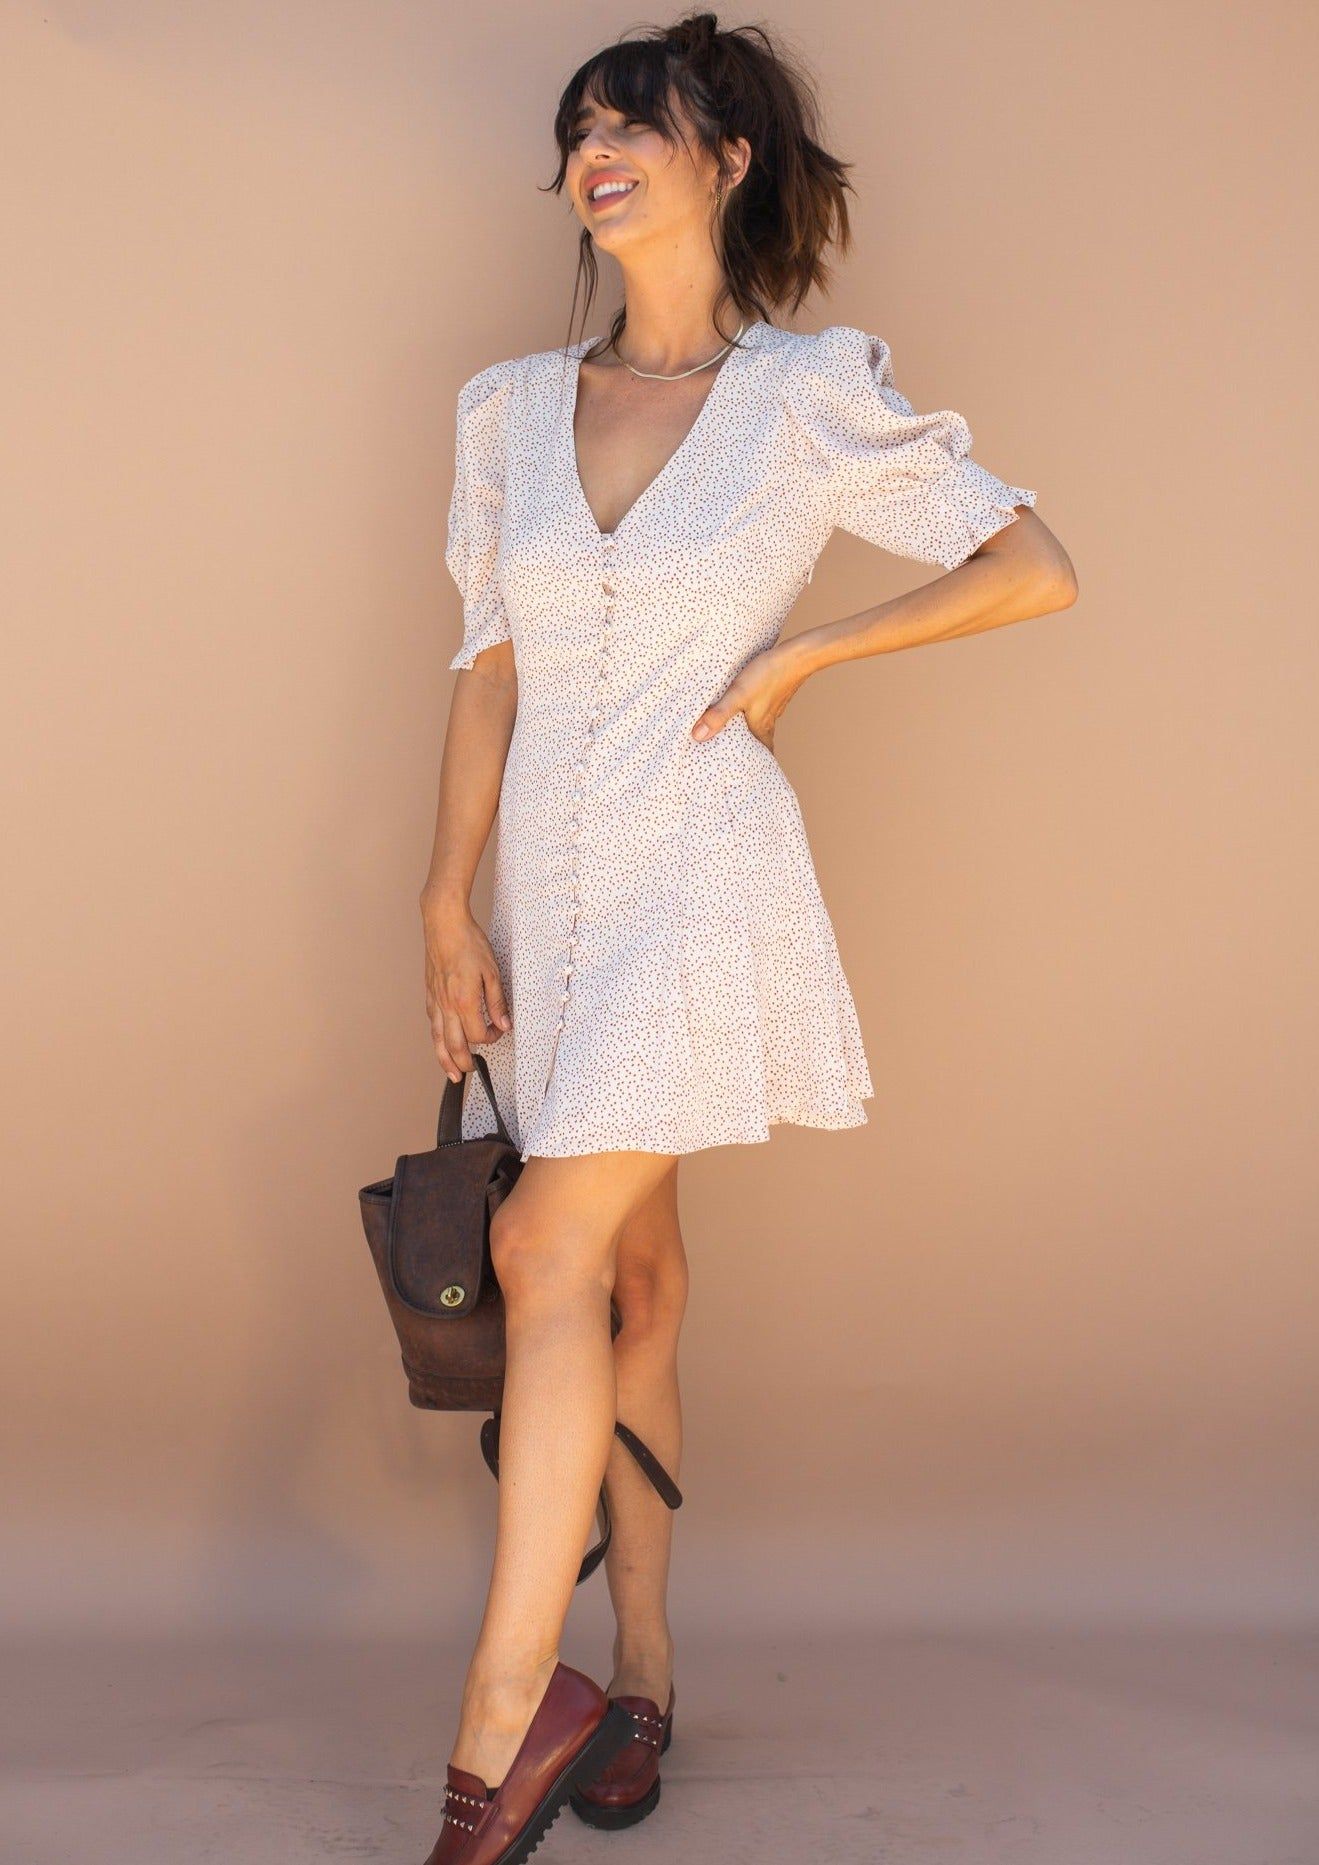 Mini dress with puff sleeves, pleated skirt, button front detail and tiny heart print.